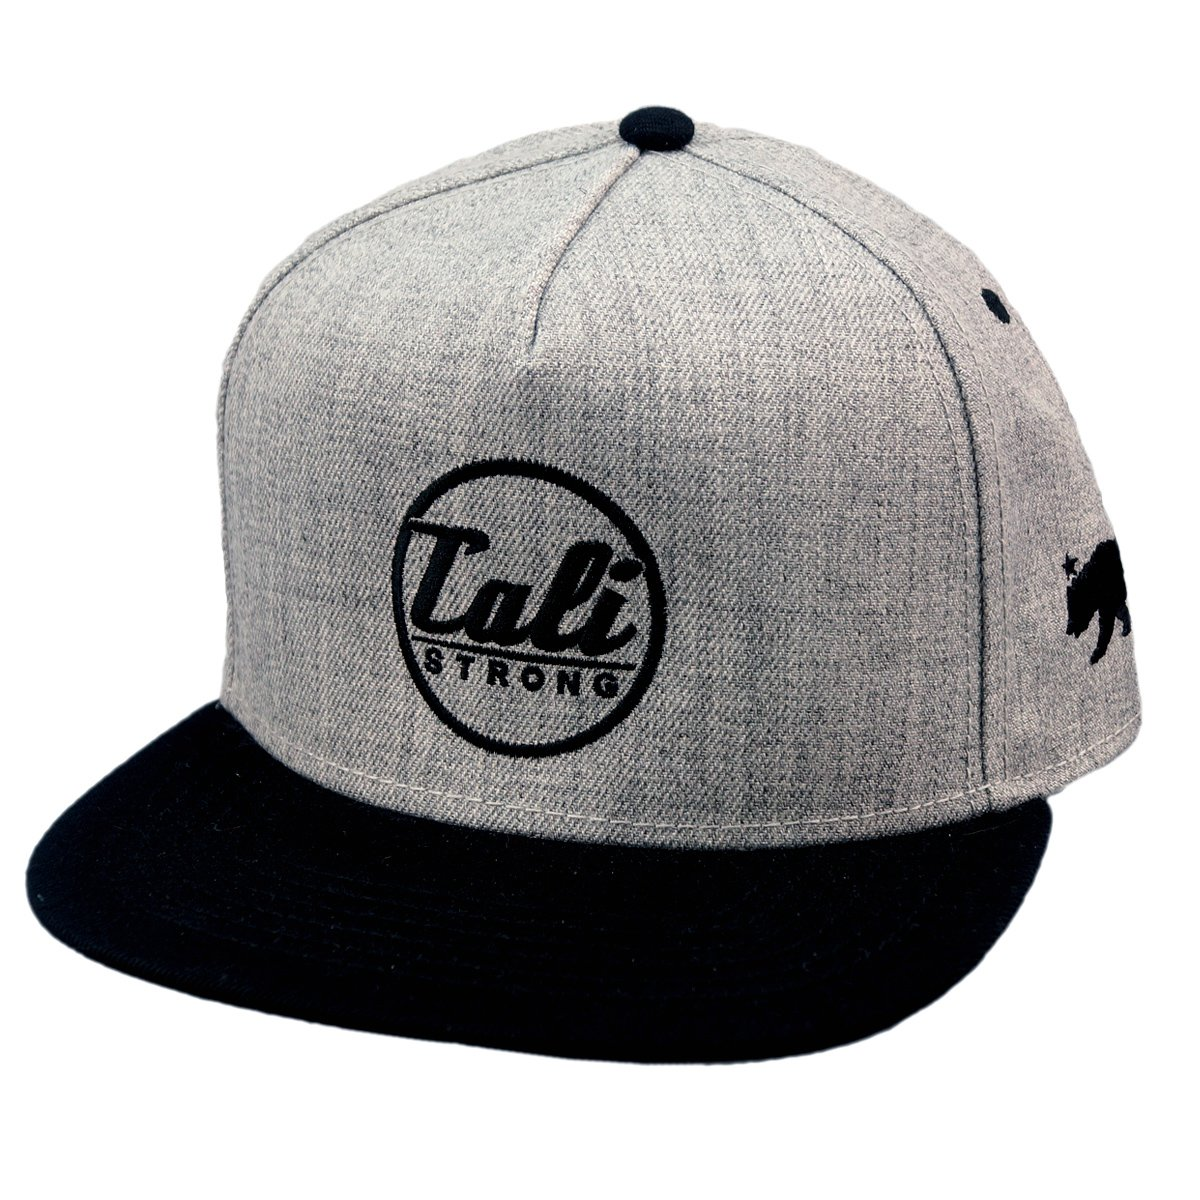 CALI Classic Black Grey Heather Flat Bill Snapback